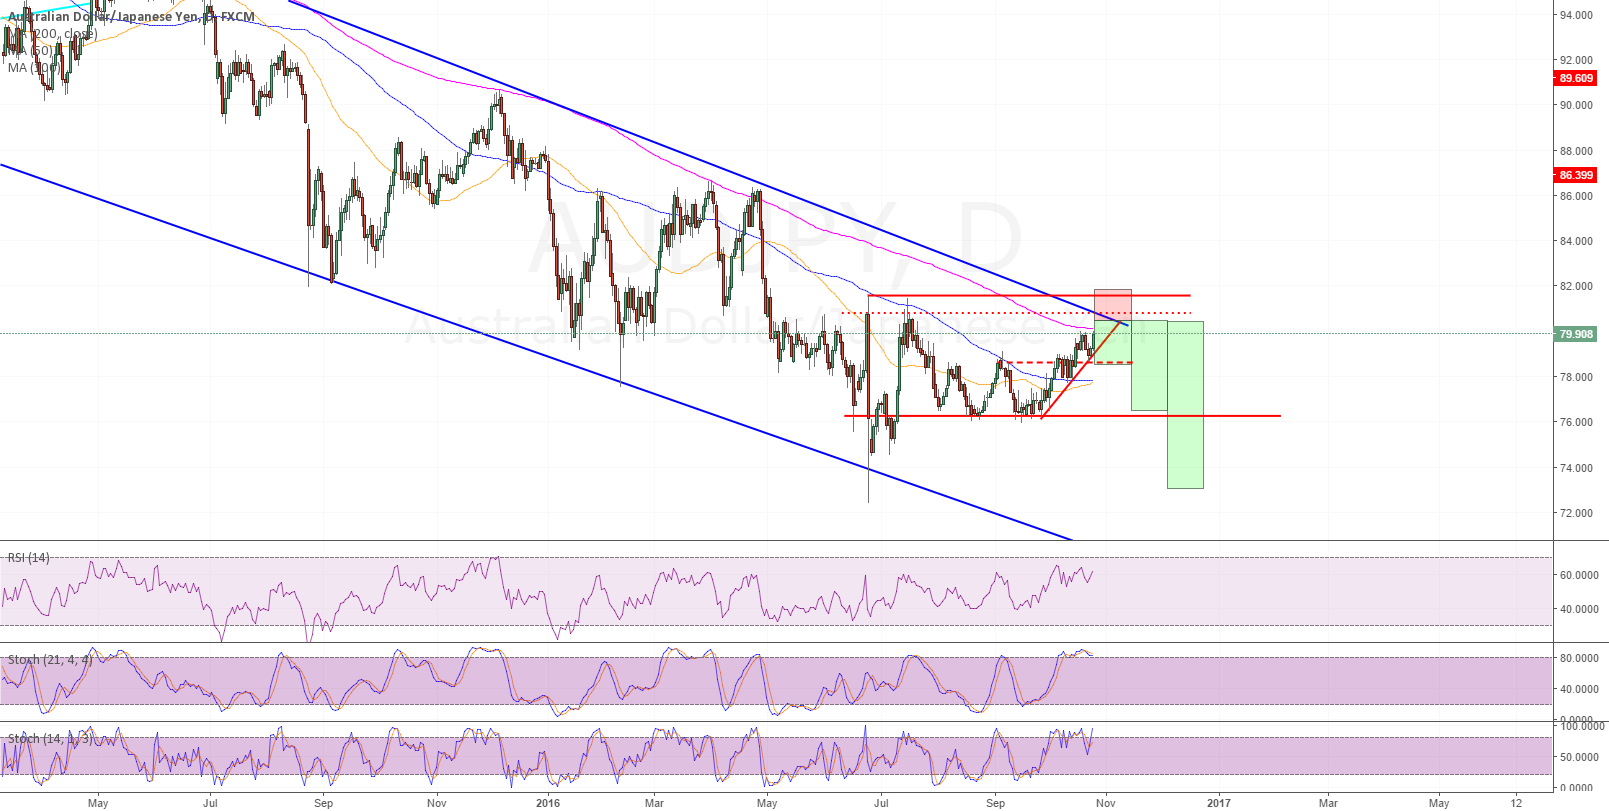 AudYen hitting topside of weekly downtrend channel